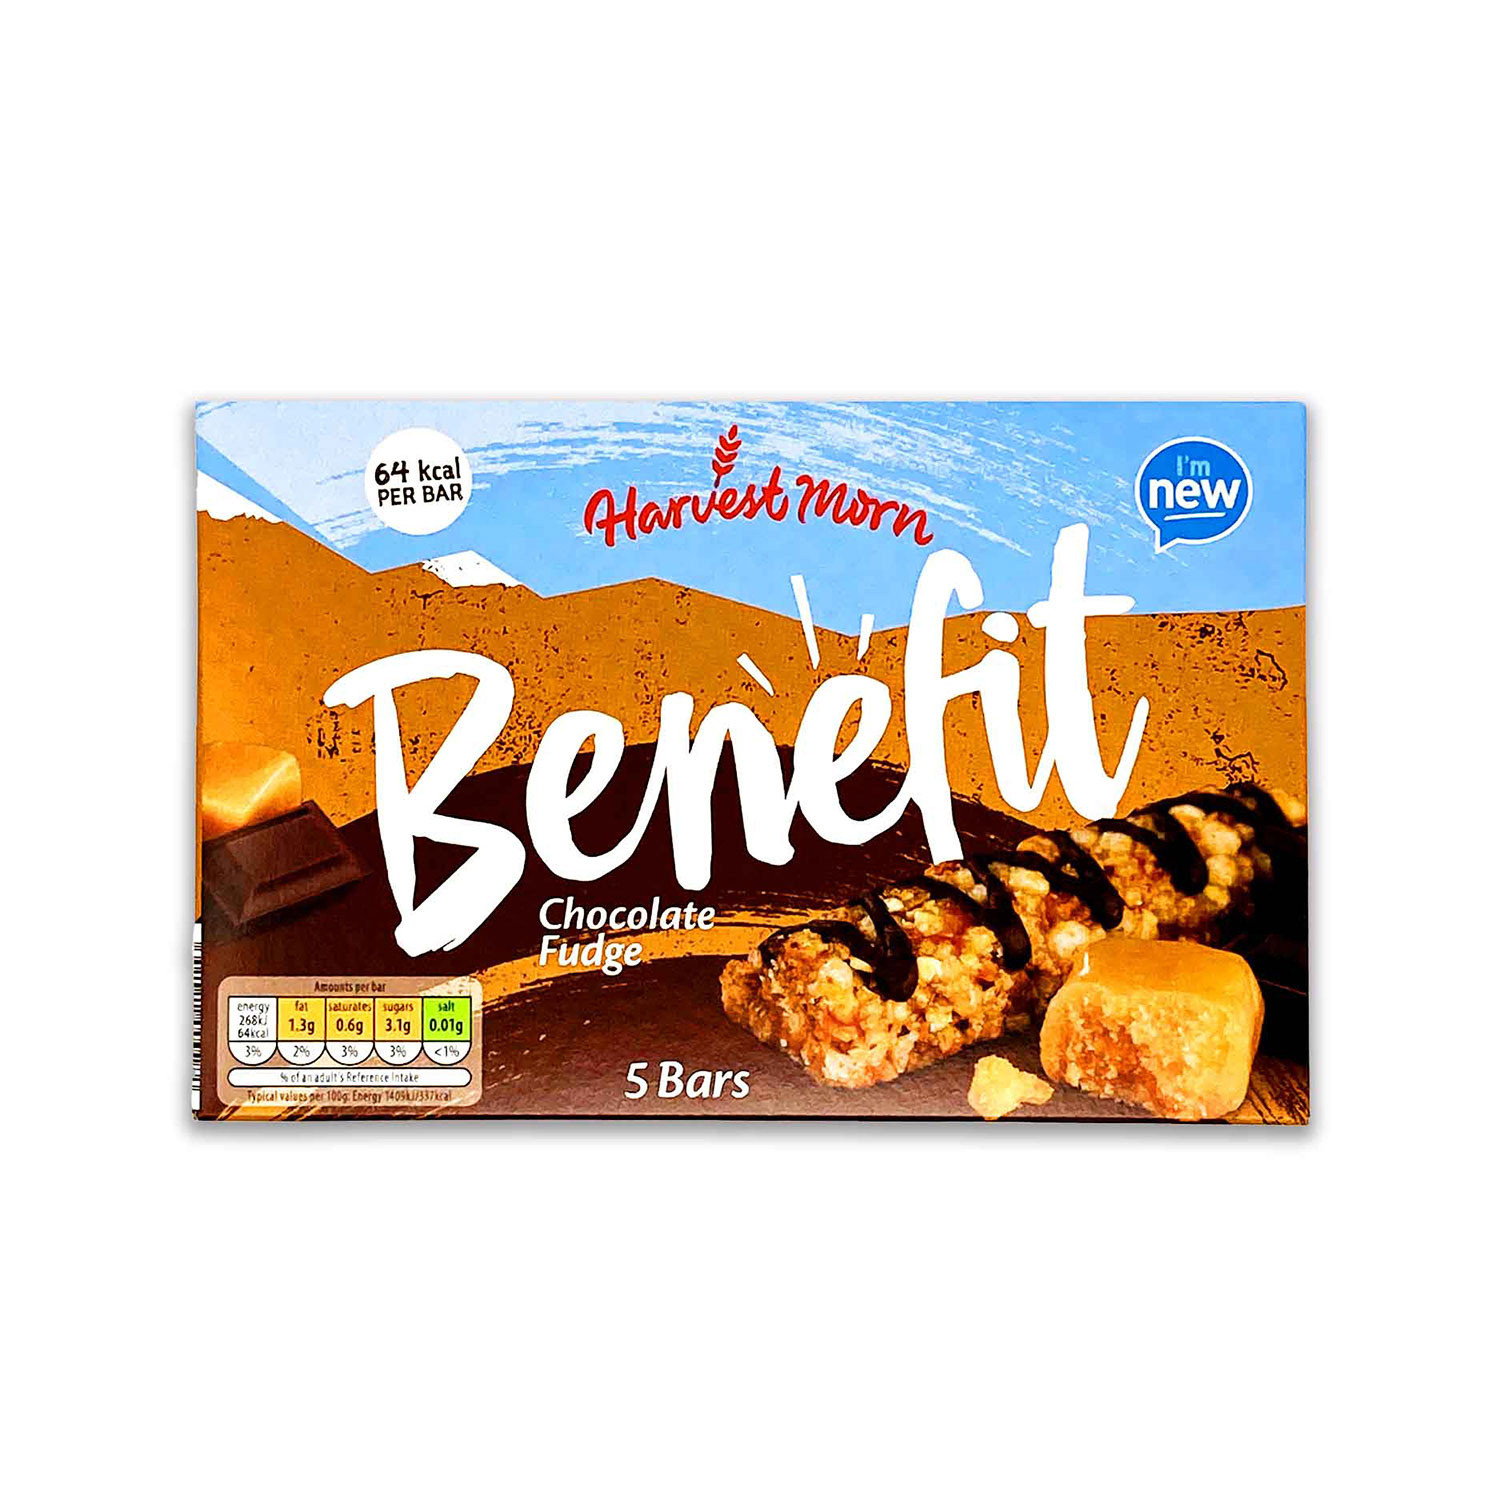 Benefit Chocolate Fudge Cereal Bar